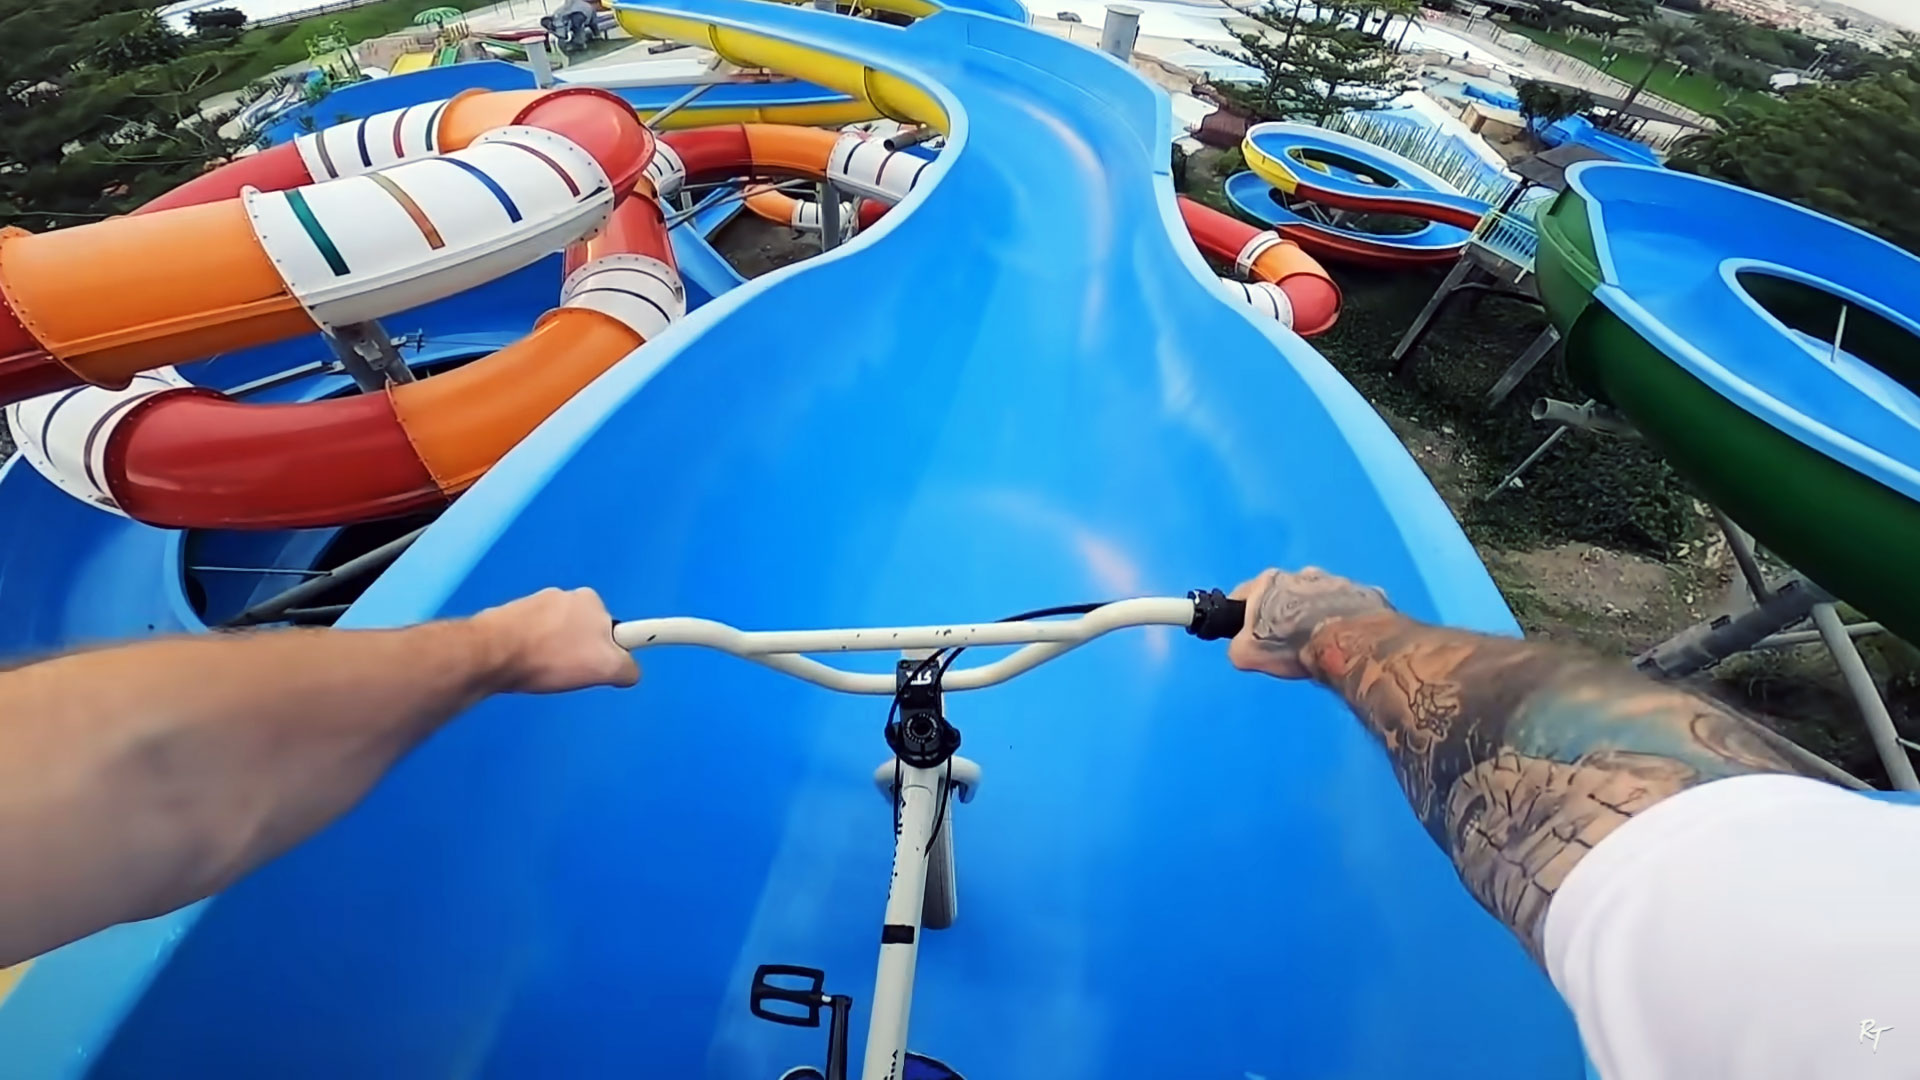 Ryan Taylor – FULL SPEED BMX IN A WATERPARK!